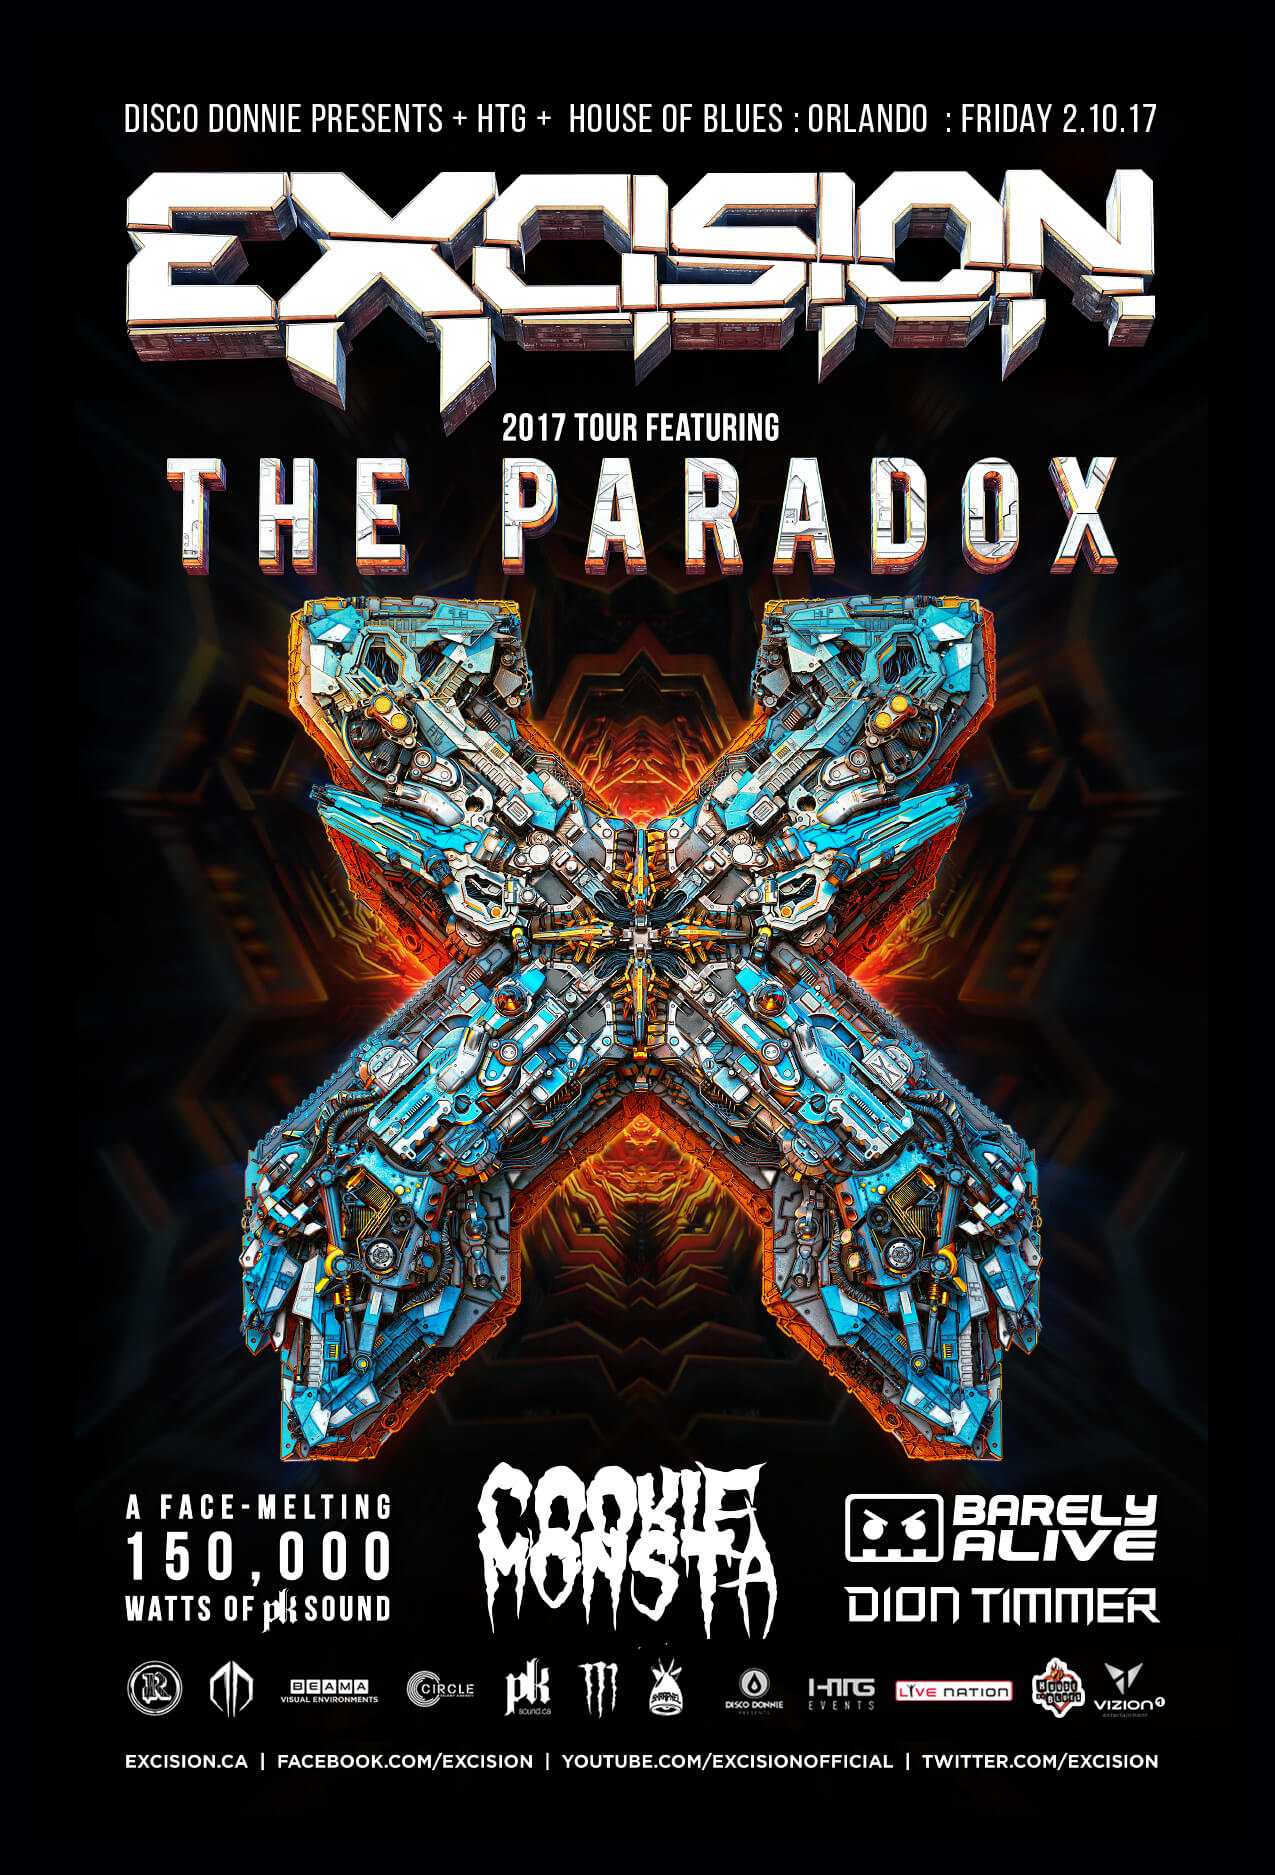 excision, cookie monsta, barely alive, dion timmer at house of